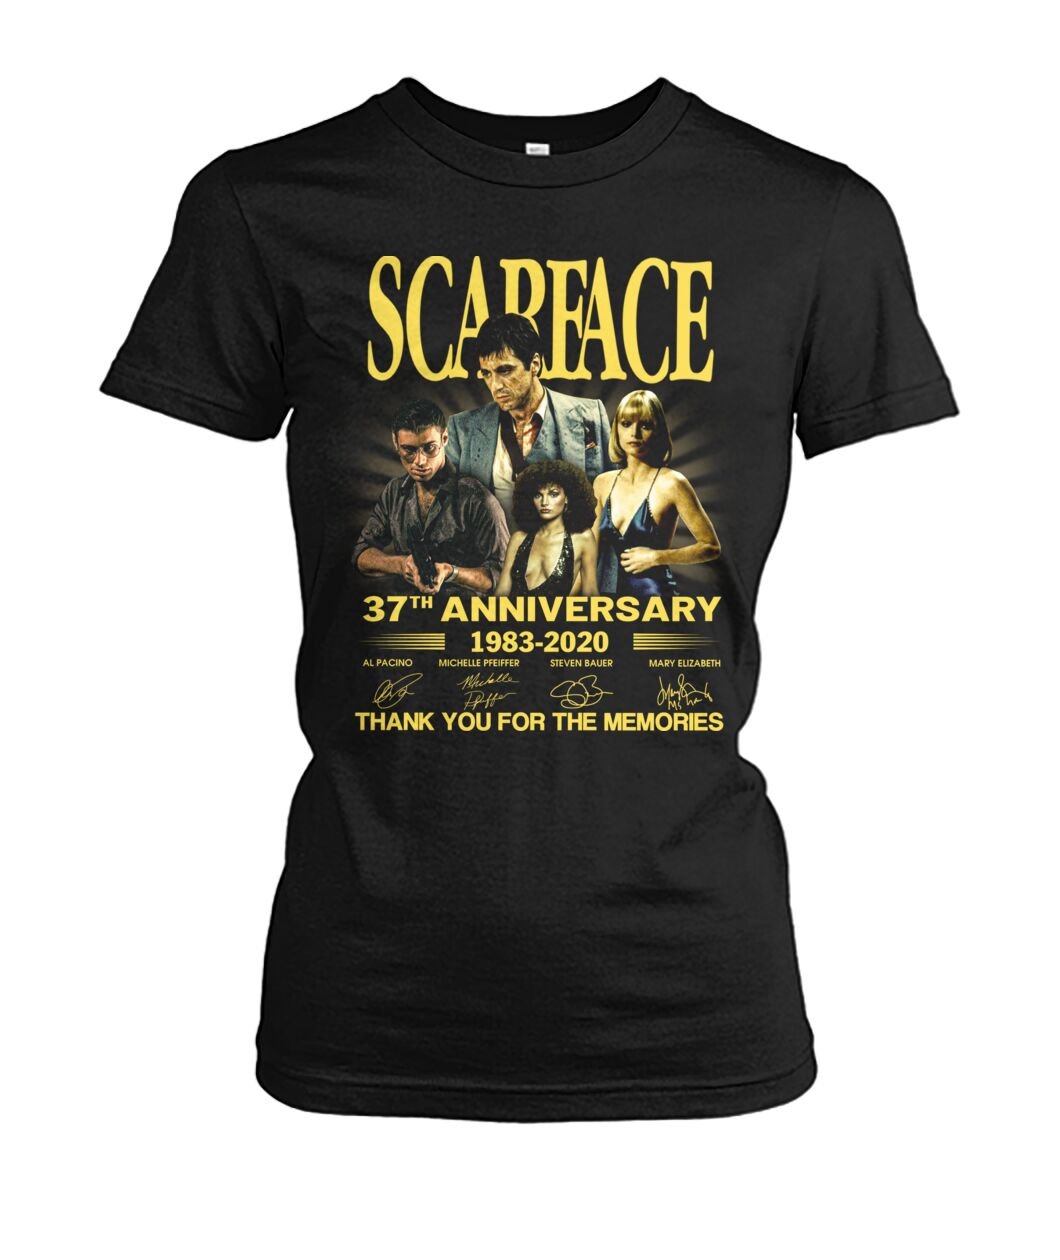 Scarface 37th anniversary thank you for the memories